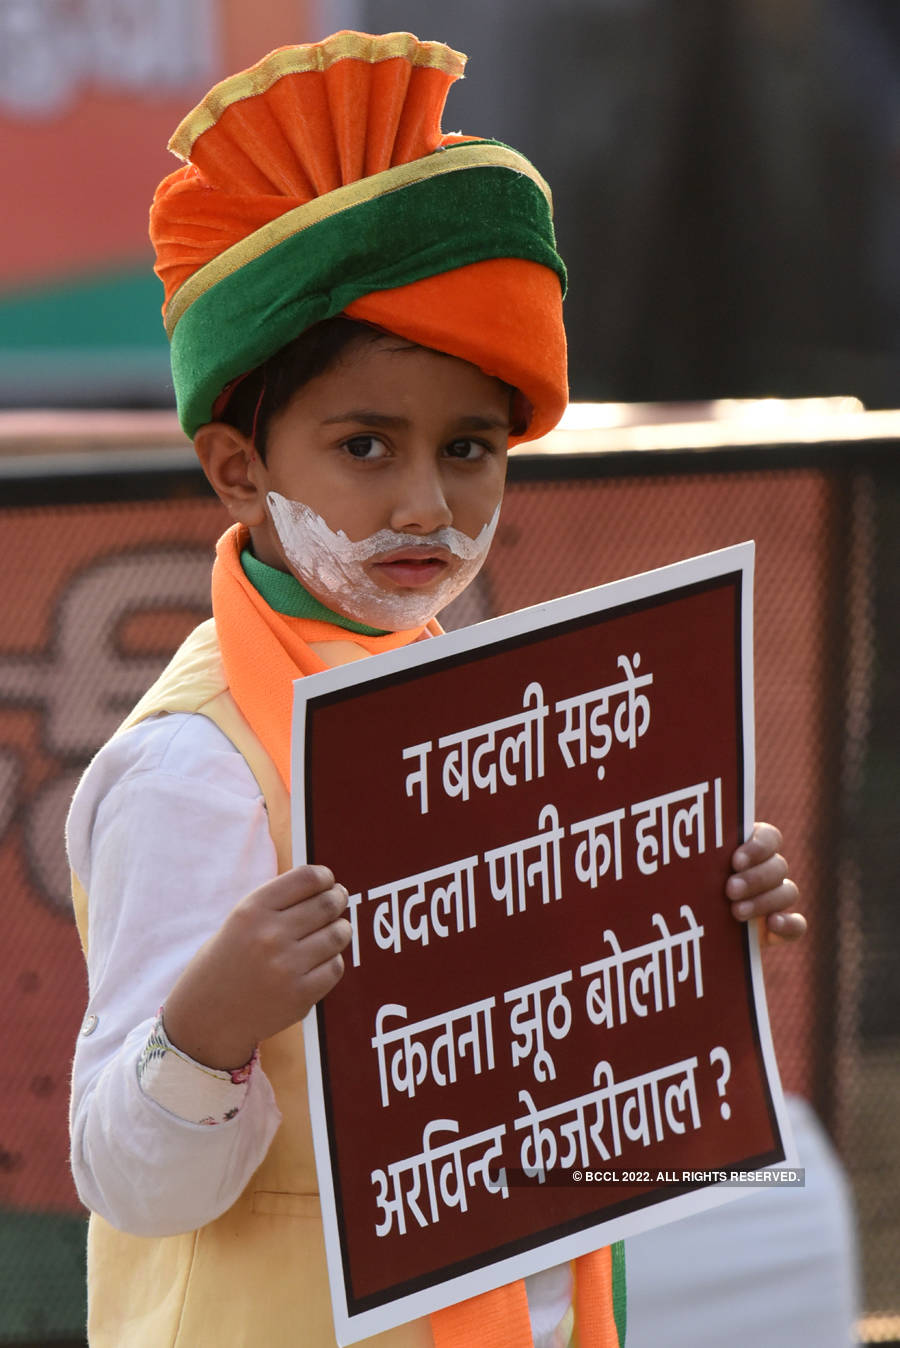 Pictures from full-throttle election campaign in Delhi